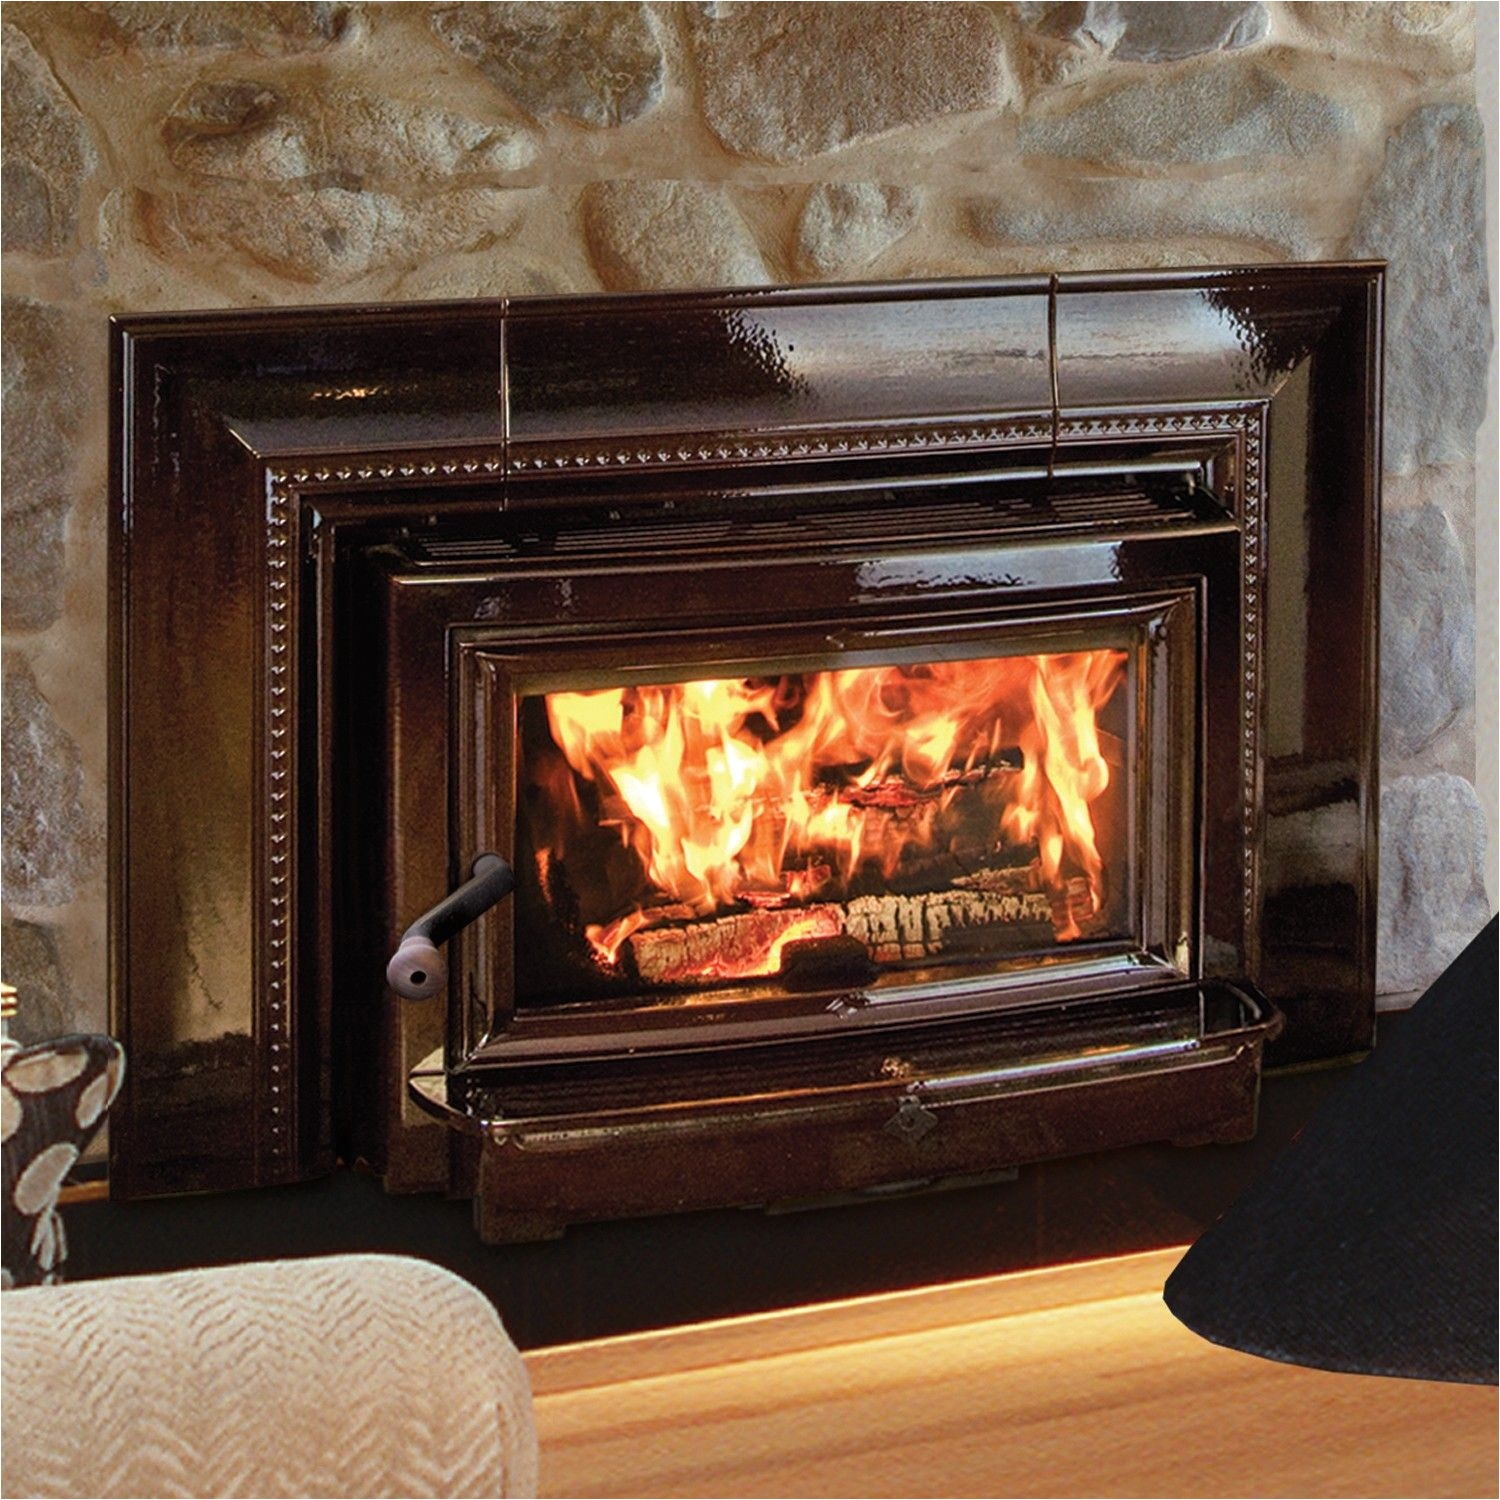 hearthstone insert clydesdale 8491 wood inserts heats up to 2 000 sq ft firebox capacity 2 4 cu ft size 75 000 btus epa certified 3 2 gph efficiency